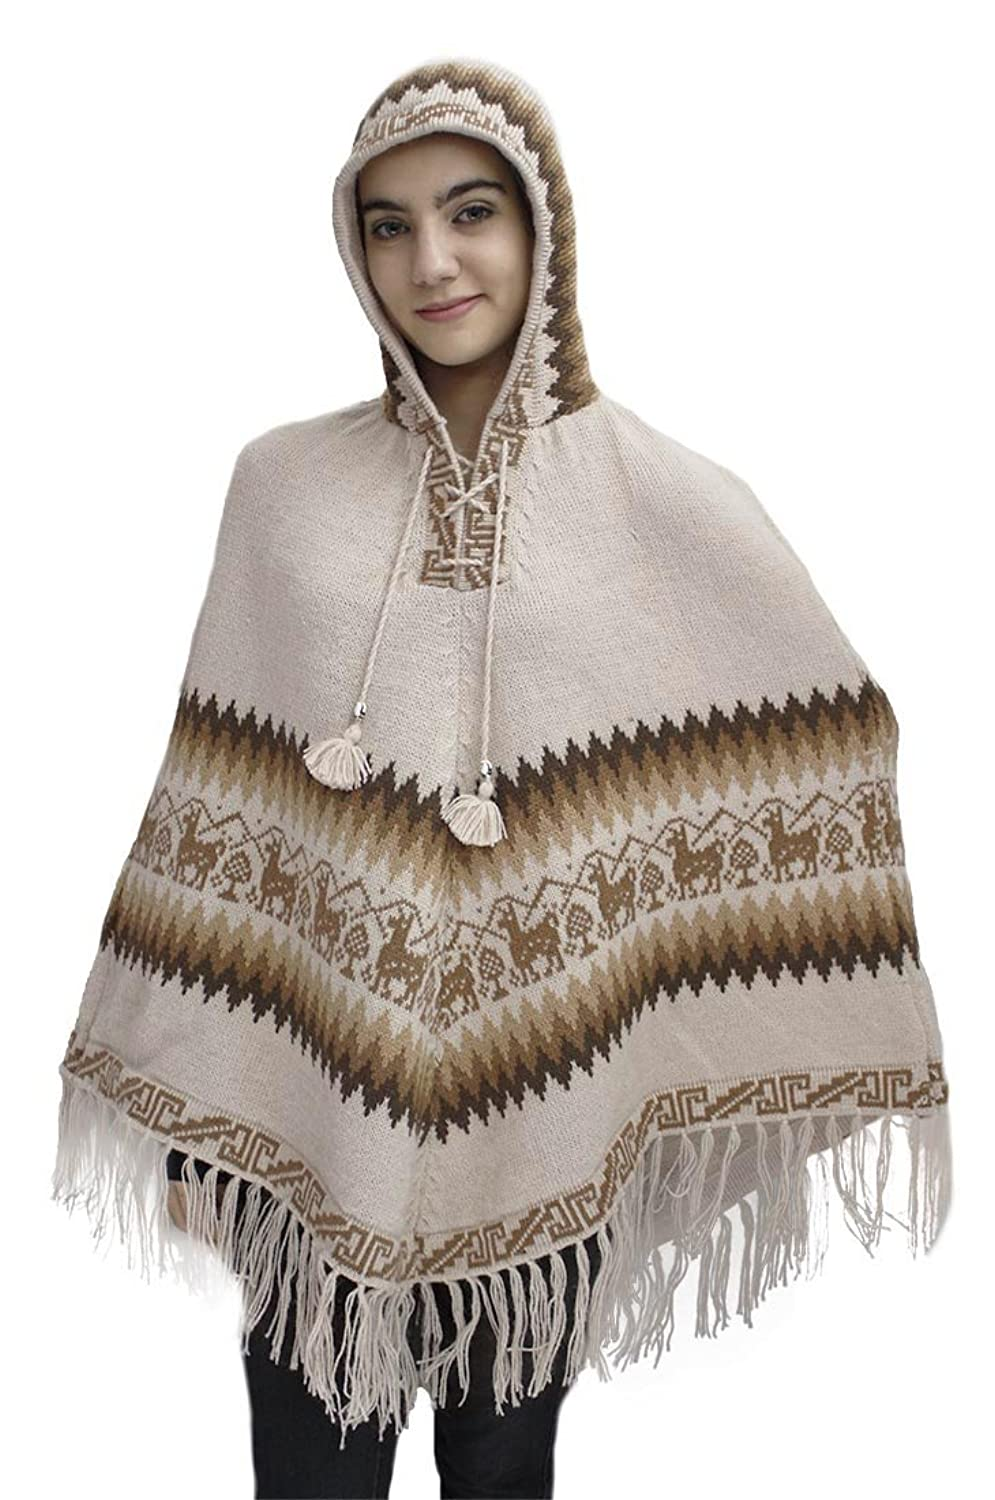 Amazon womens alpaca wool hooded poncho cape knit yarn coat amazon womens alpaca wool hooded poncho cape knit yarn coat llamas design beige clothing bankloansurffo Image collections